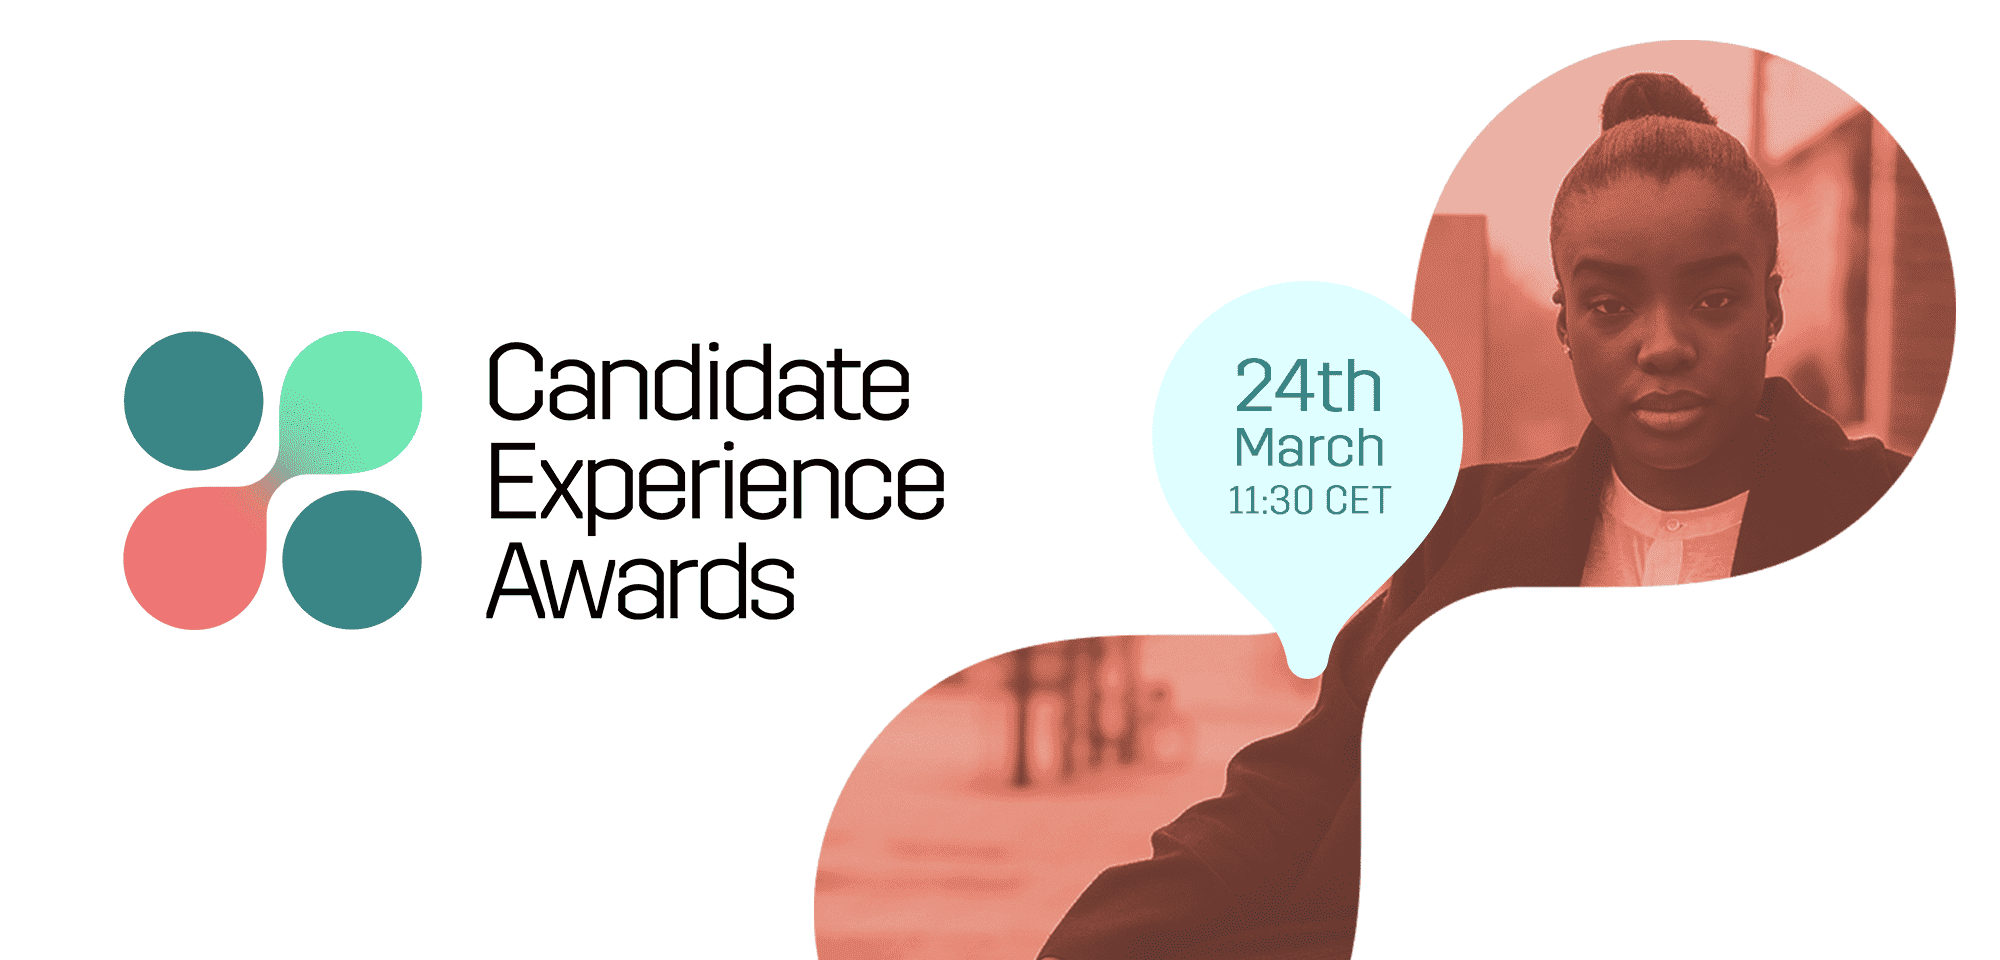 cxp-awards-candidate-experience-2021-event-banner